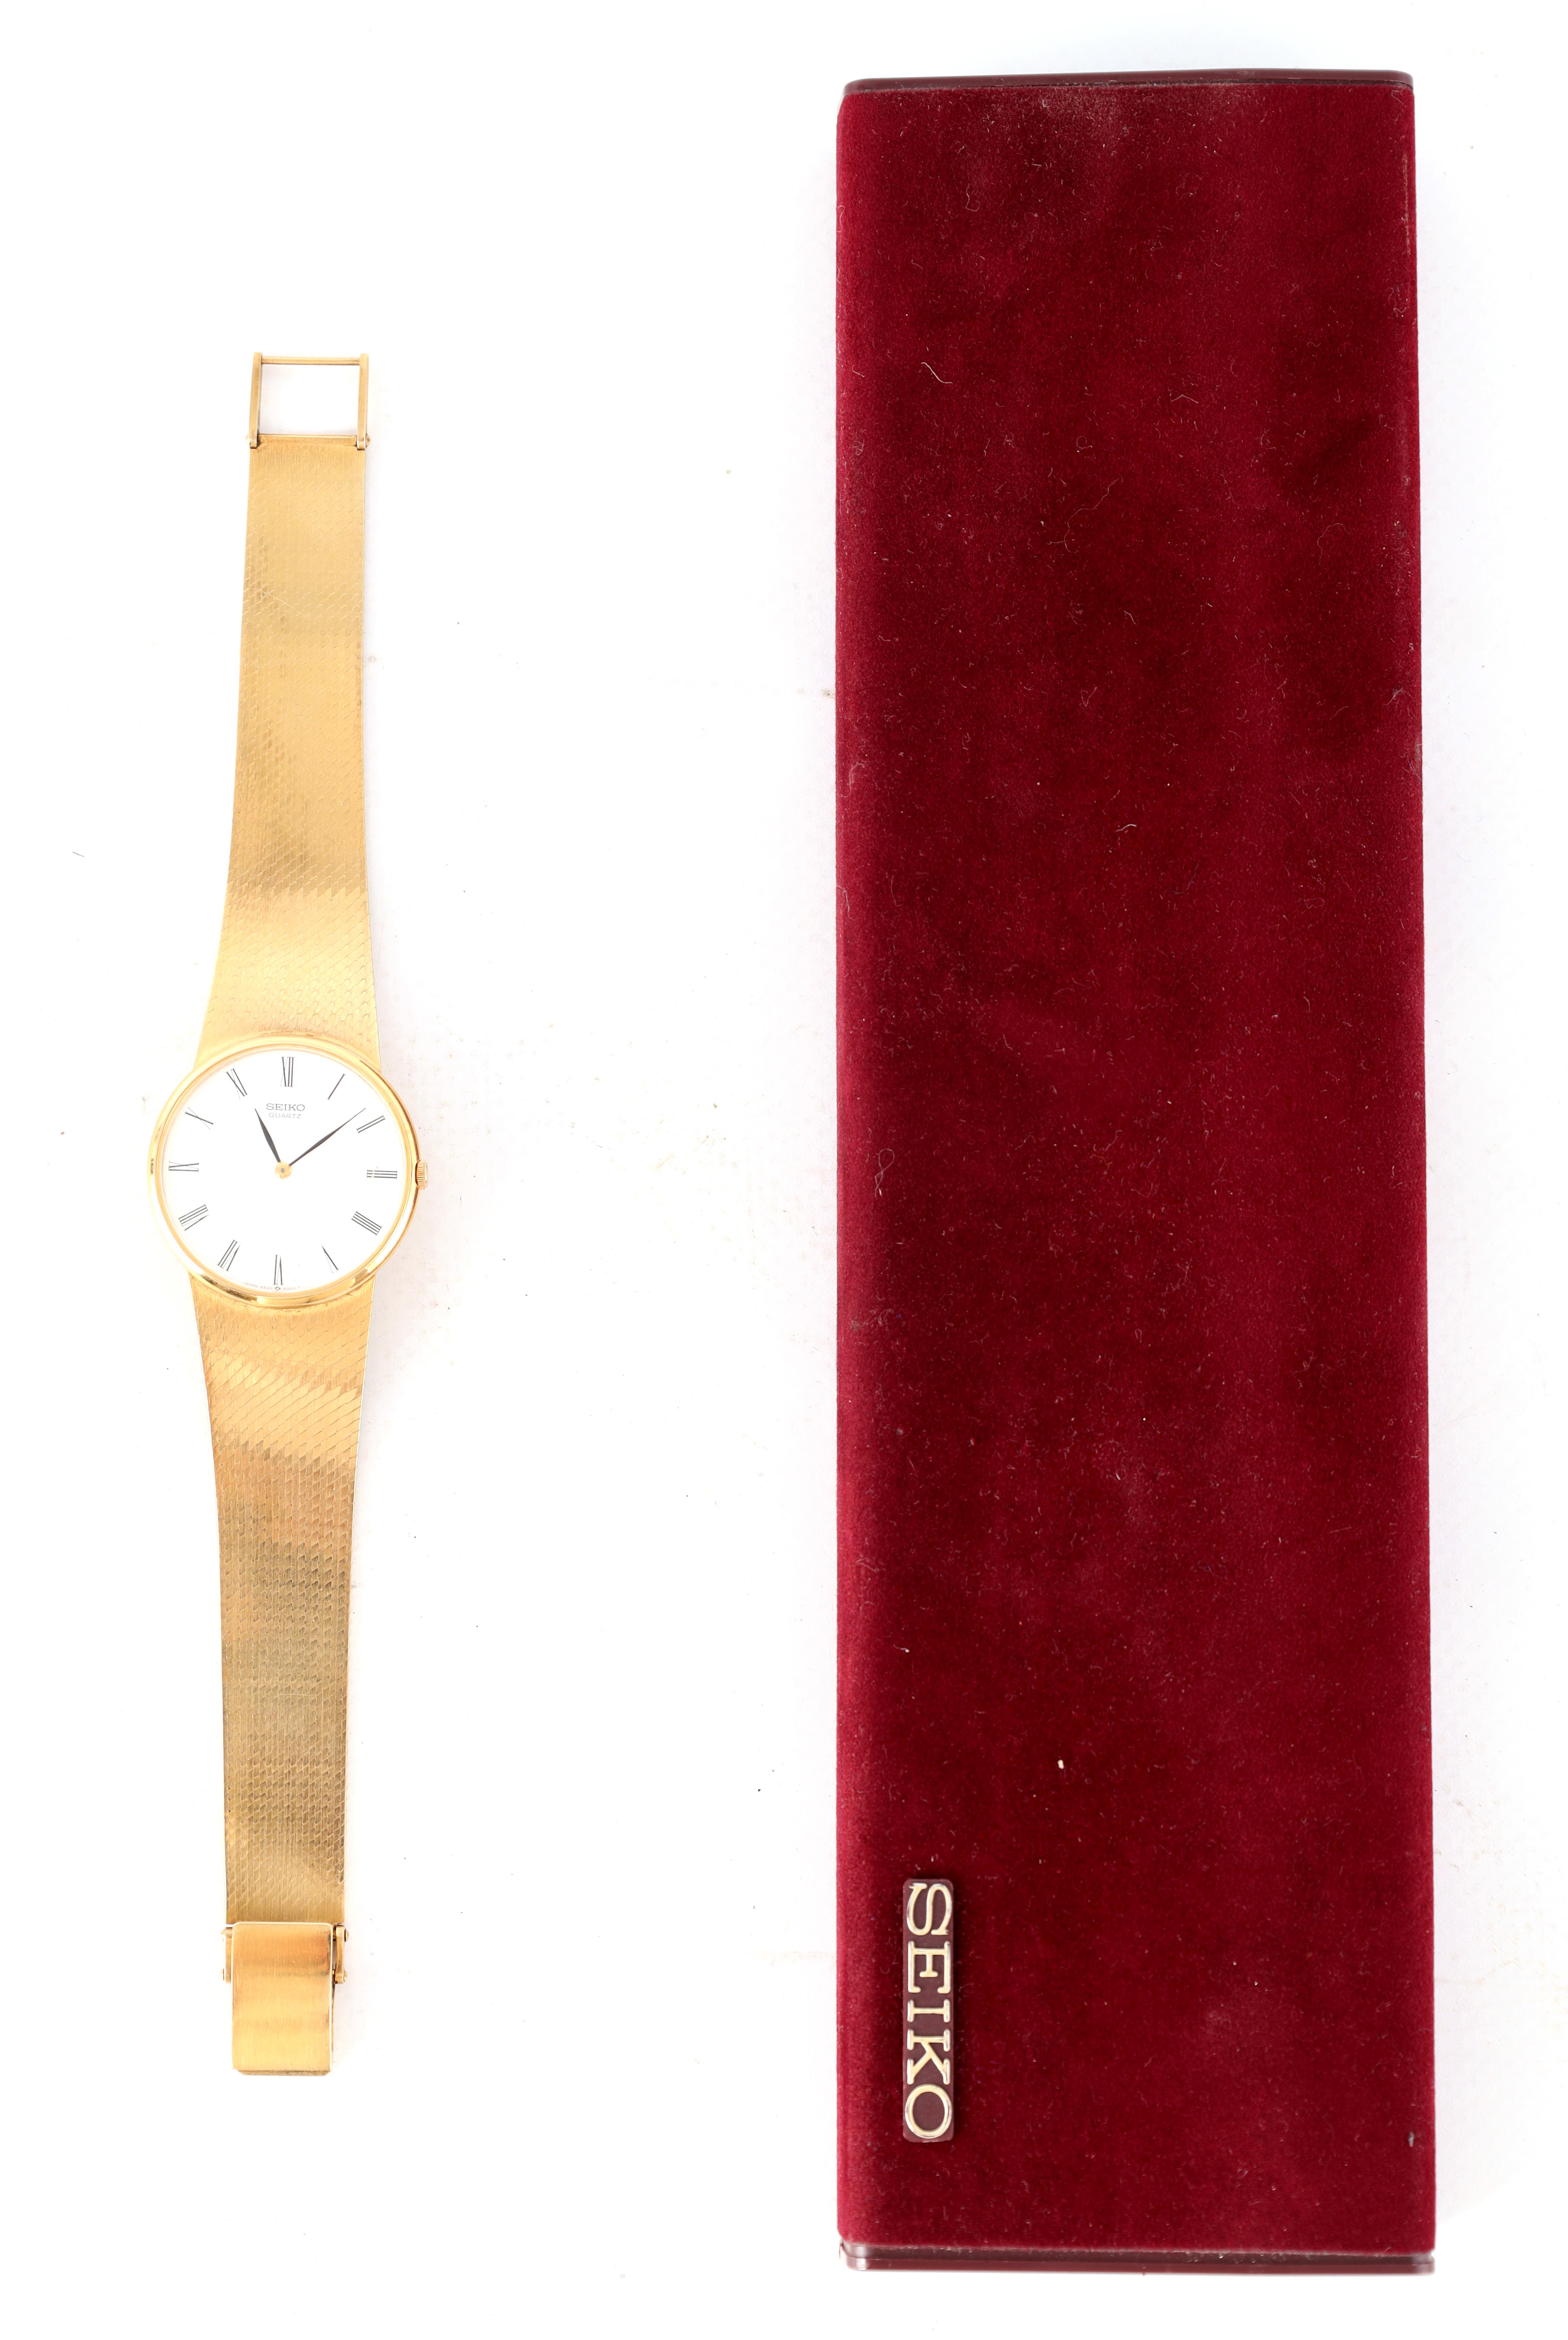 A GENTLEMAN'S 9CT GOLD SEIKO WRISTWATCH on original 9ct gold bracelet The white enamel dial with - Image 4 of 8